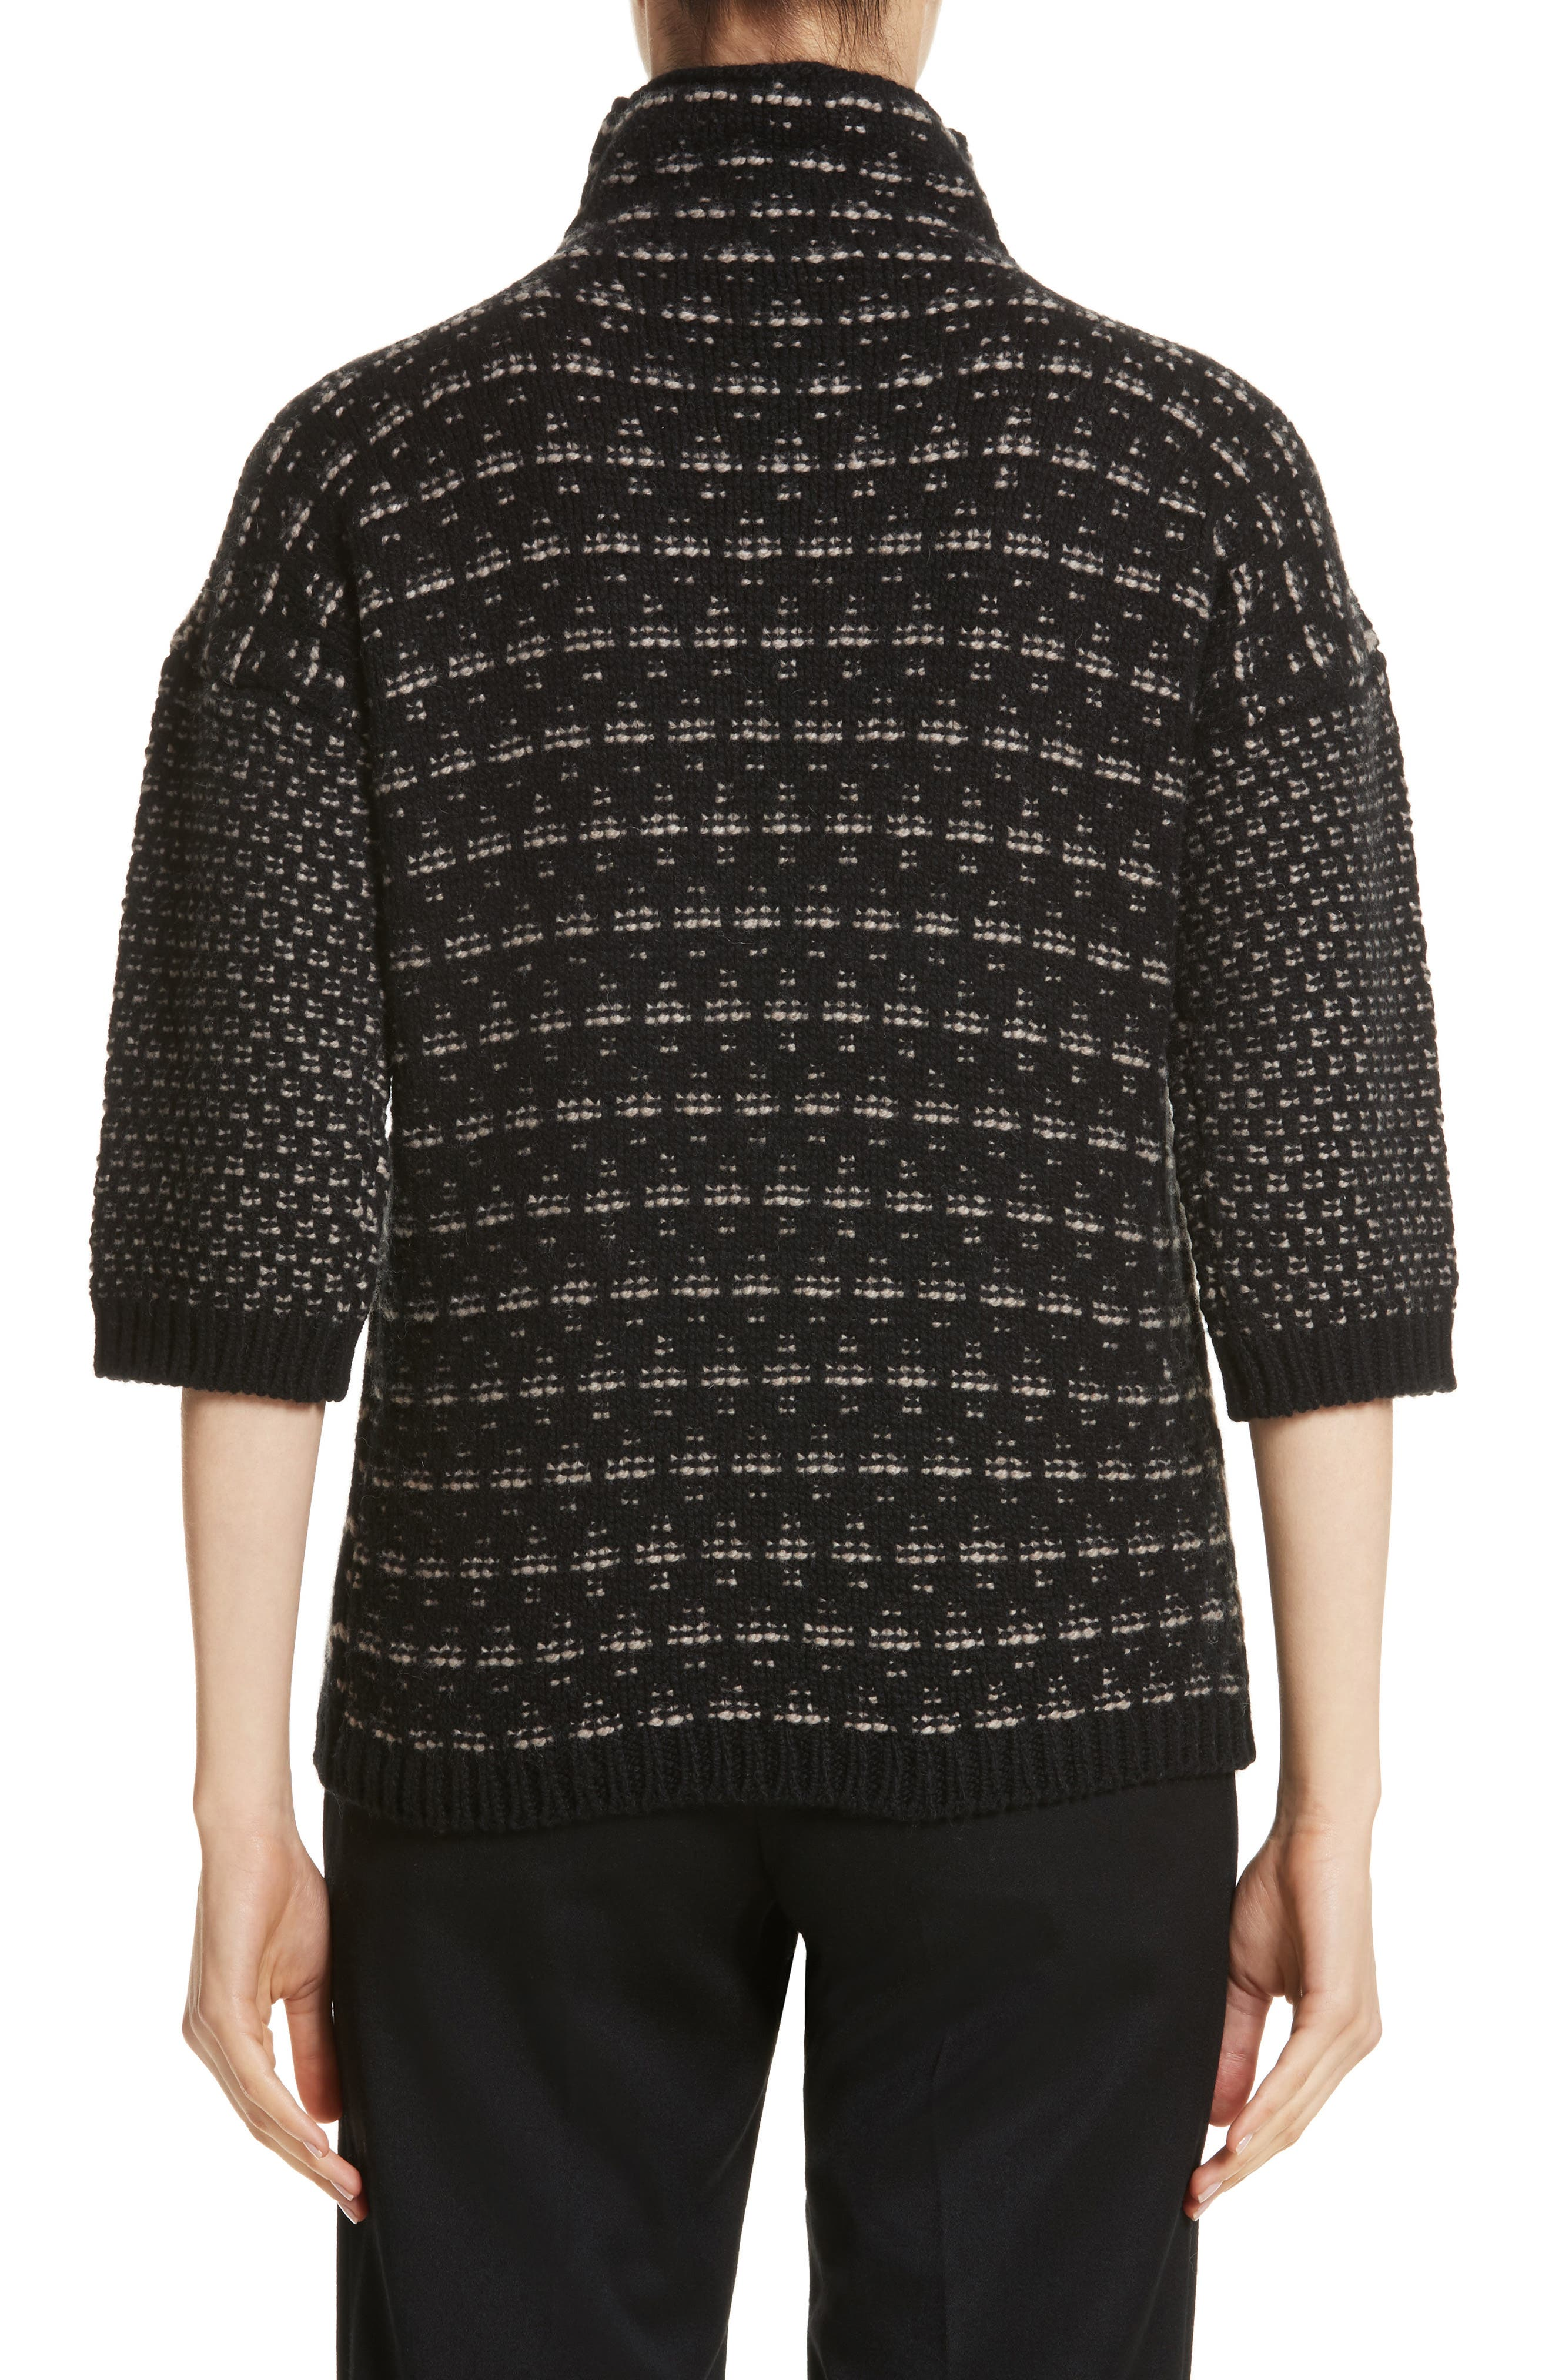 Rana Wool & Cashmere Sweater,                             Alternate thumbnail 2, color,                             Black